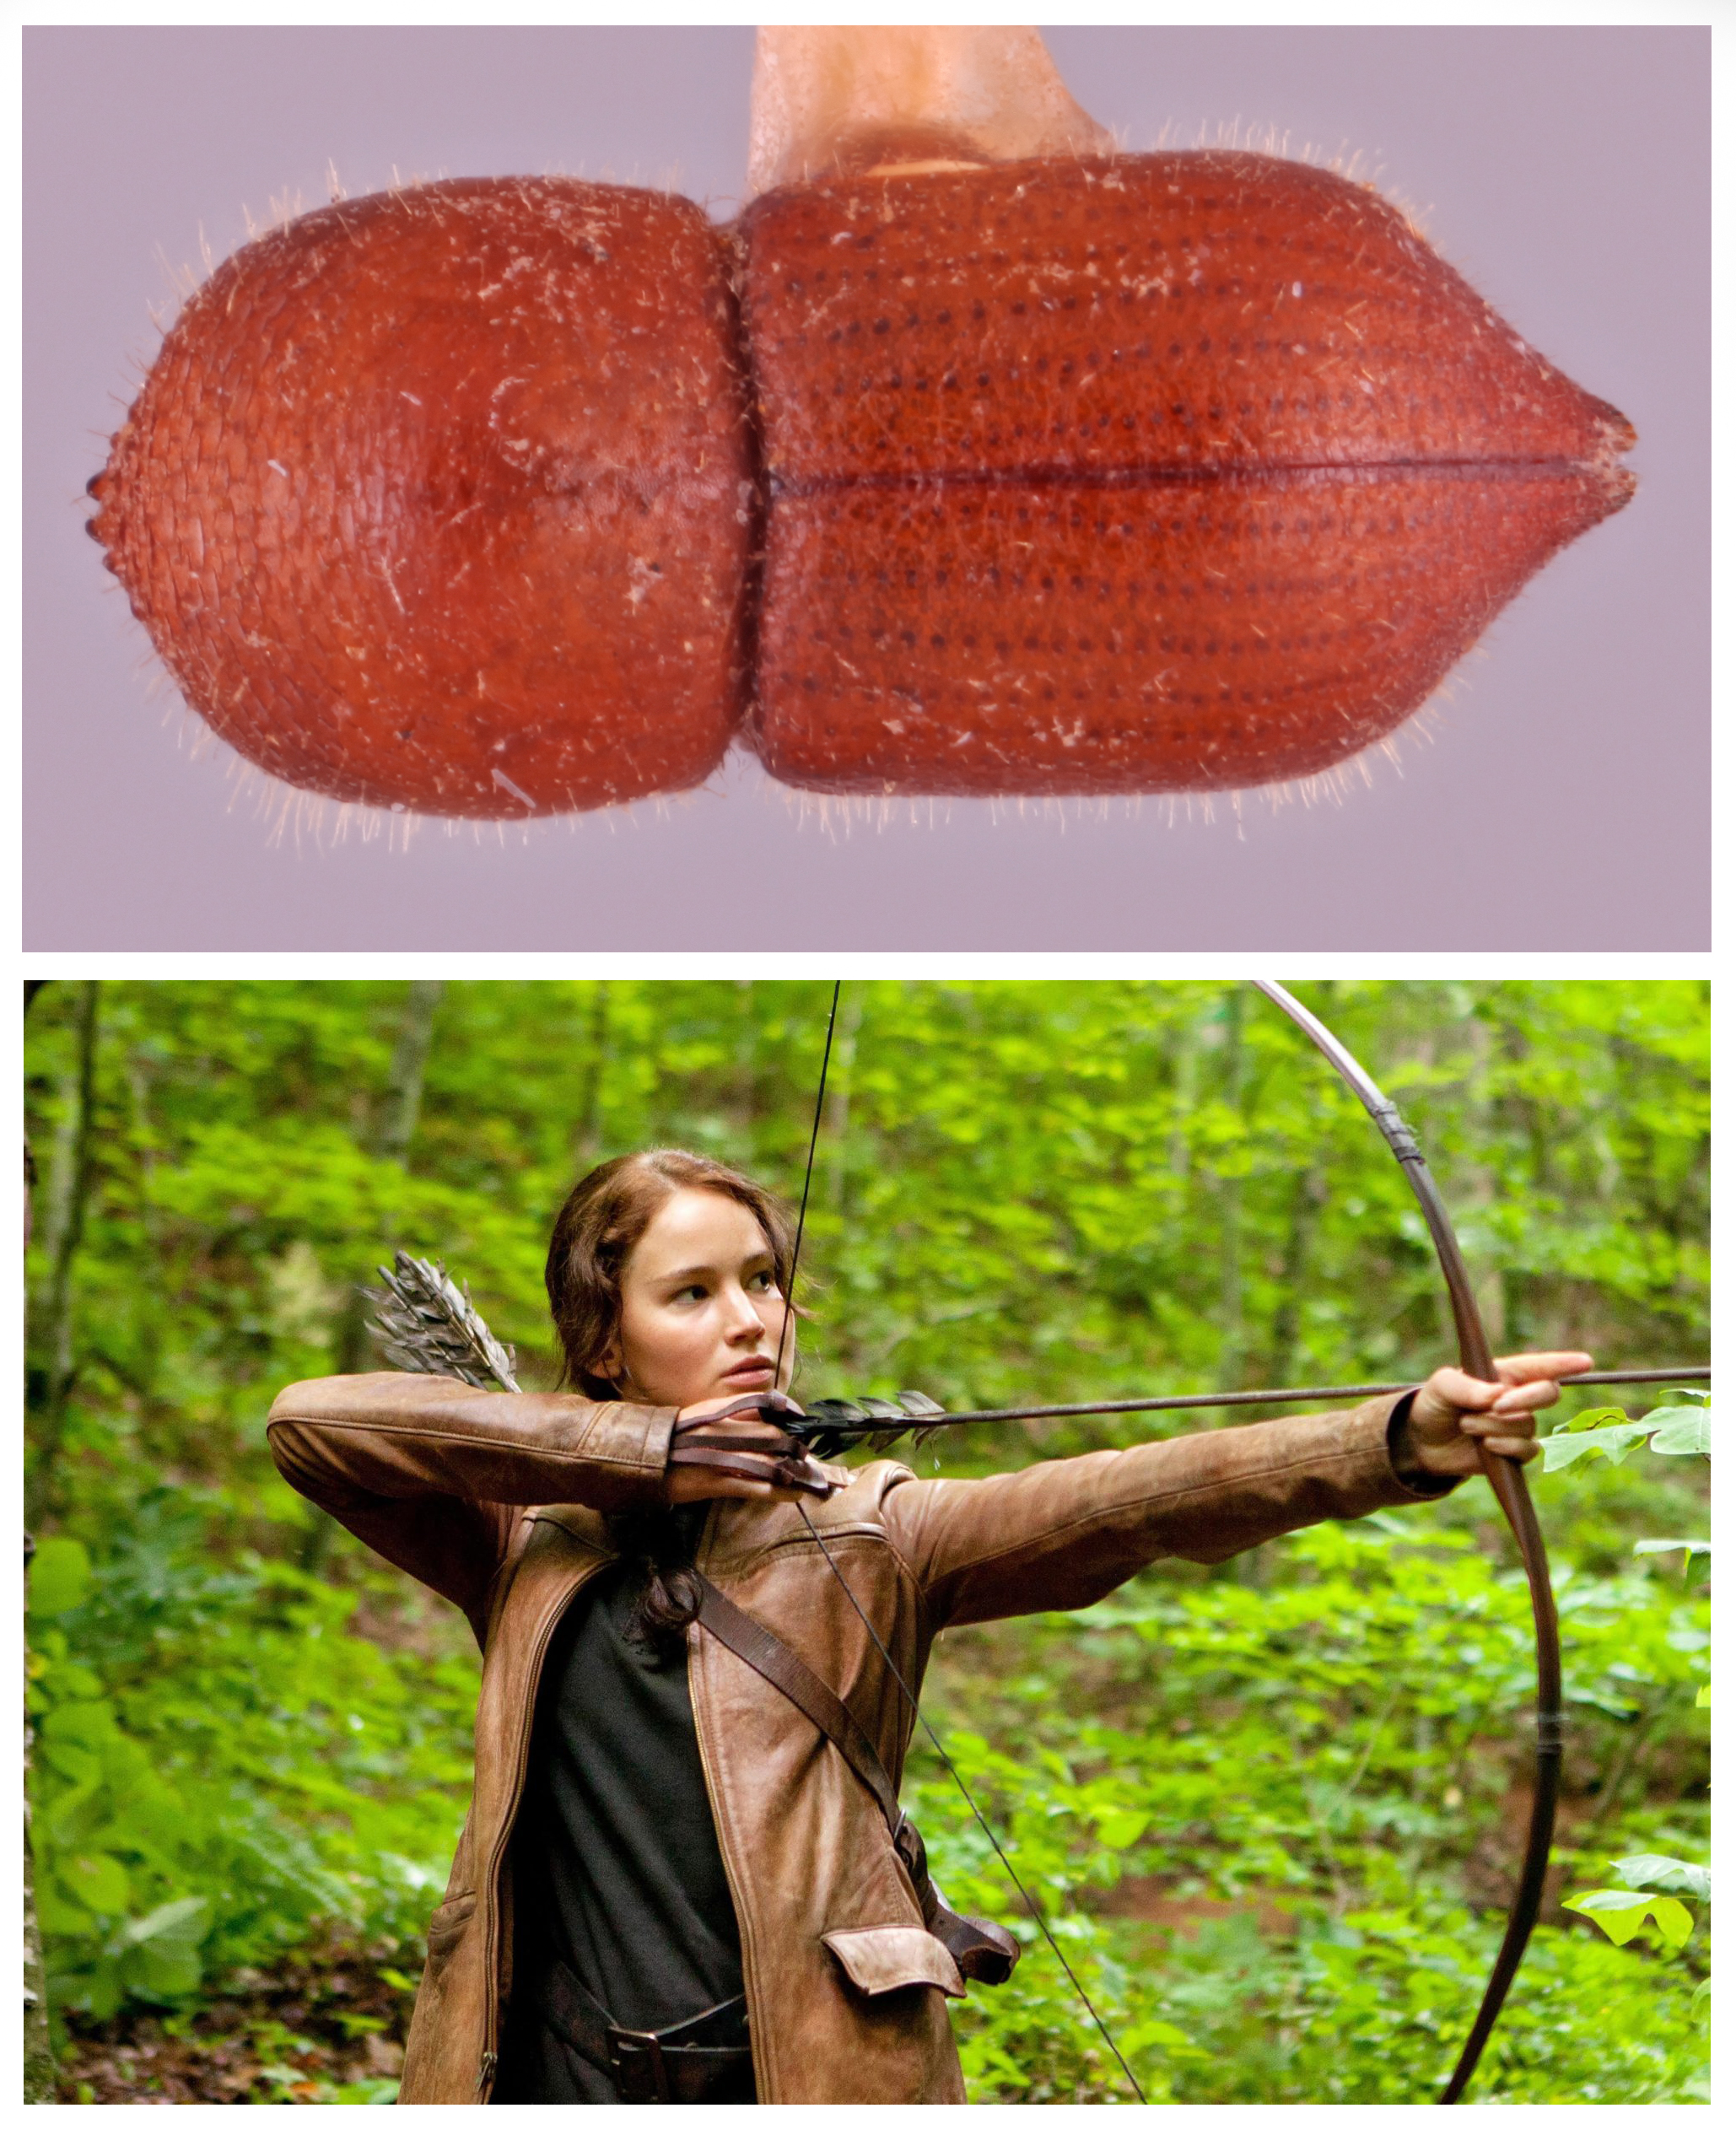 top panel shows the beetle Coptoborus katniss, named after Hunger games character Katniss Everdeen, shown in bottom panel